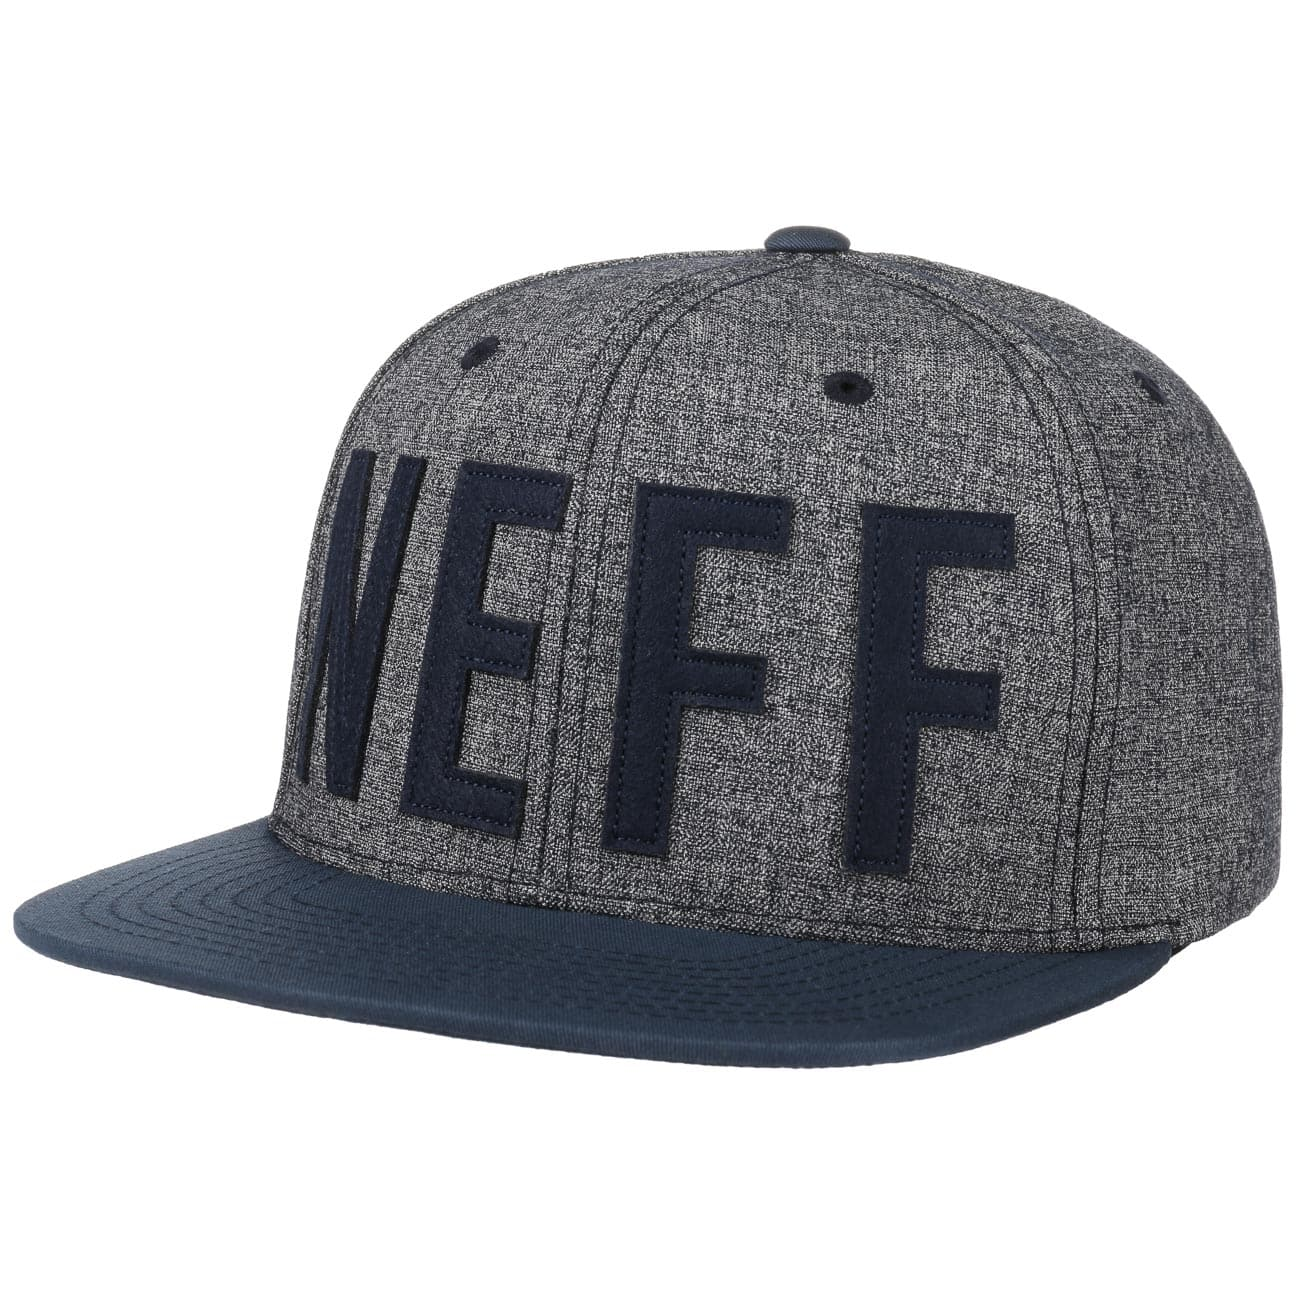 Brother Snapback Cap by neff